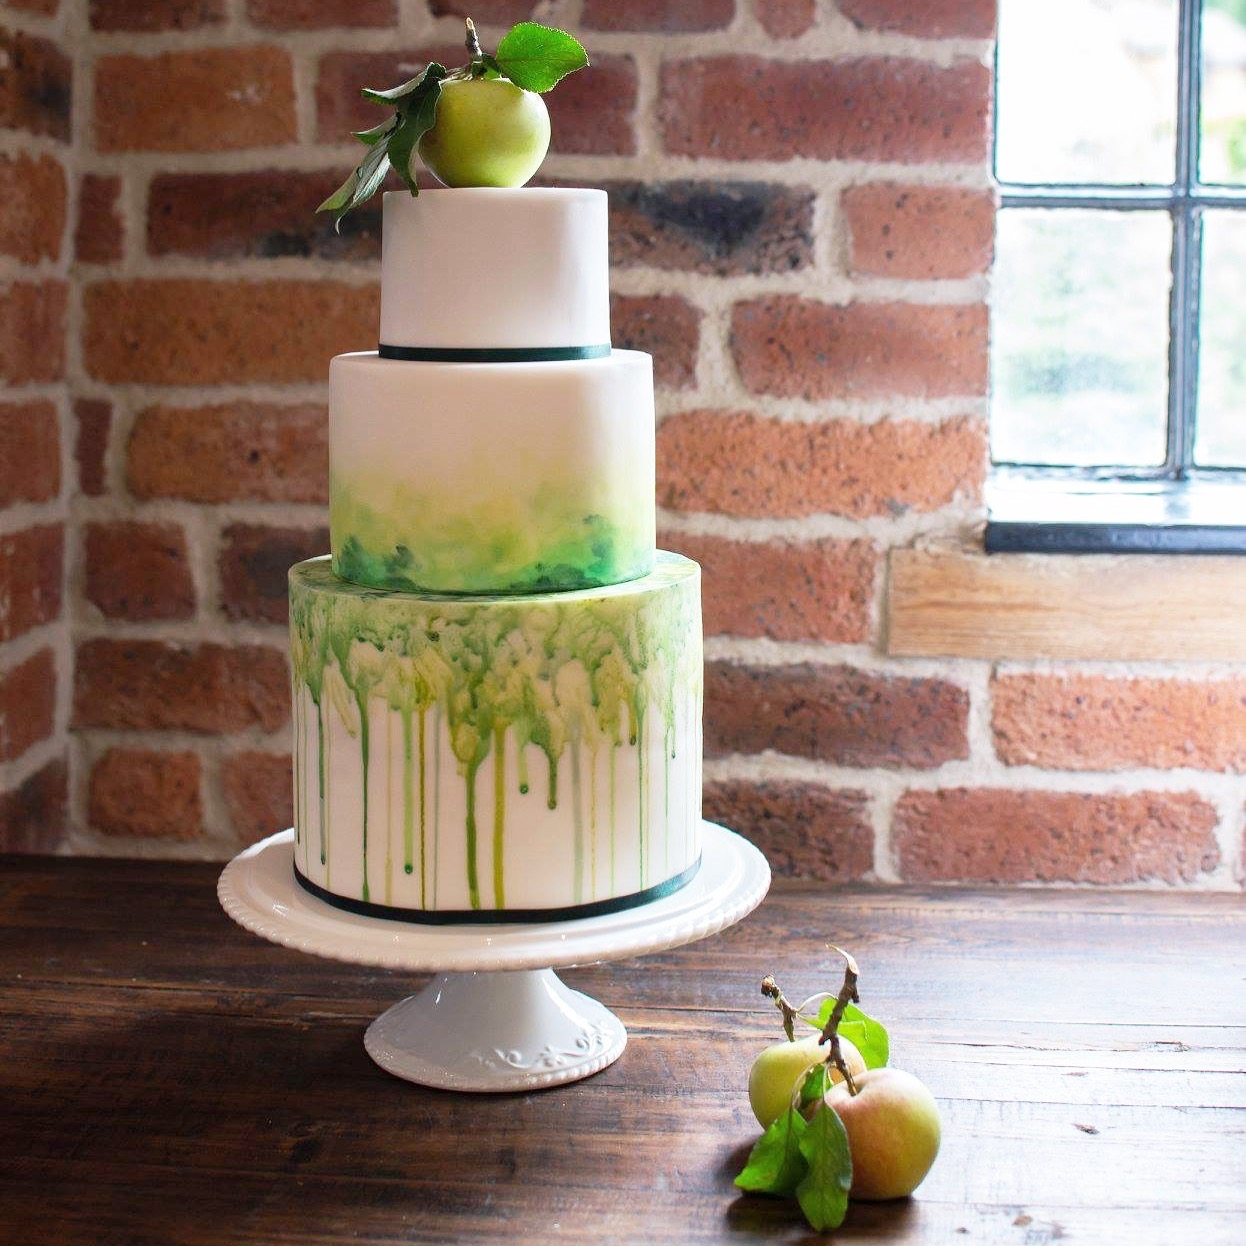 Spring green wedding cake